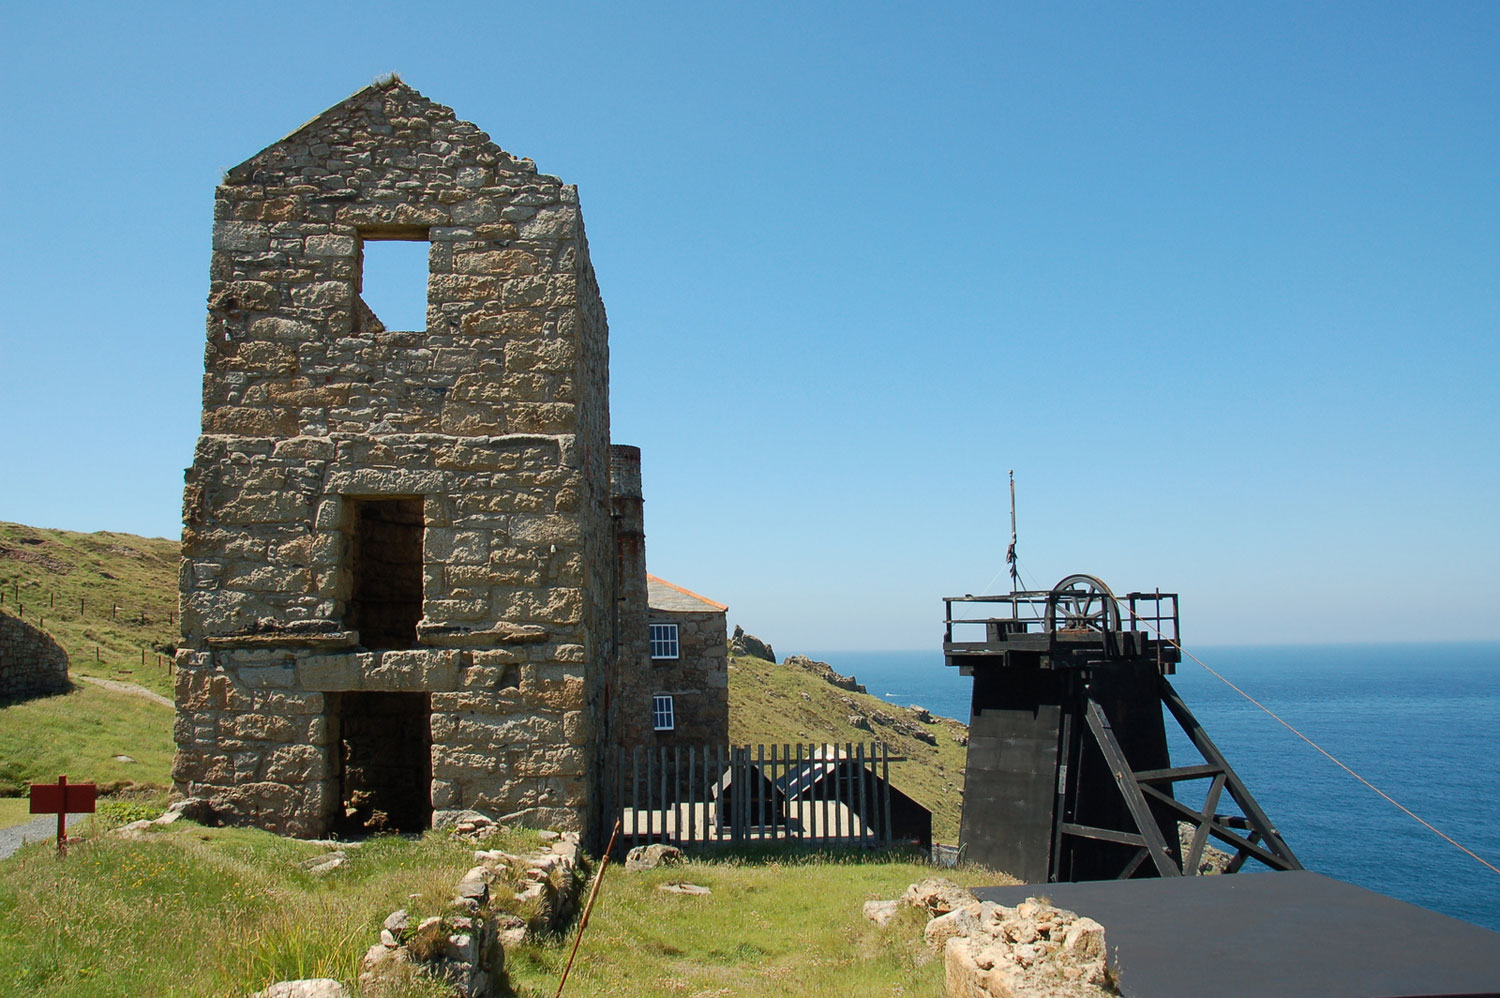 photograph of coastal ruined mine building and winding mechanism